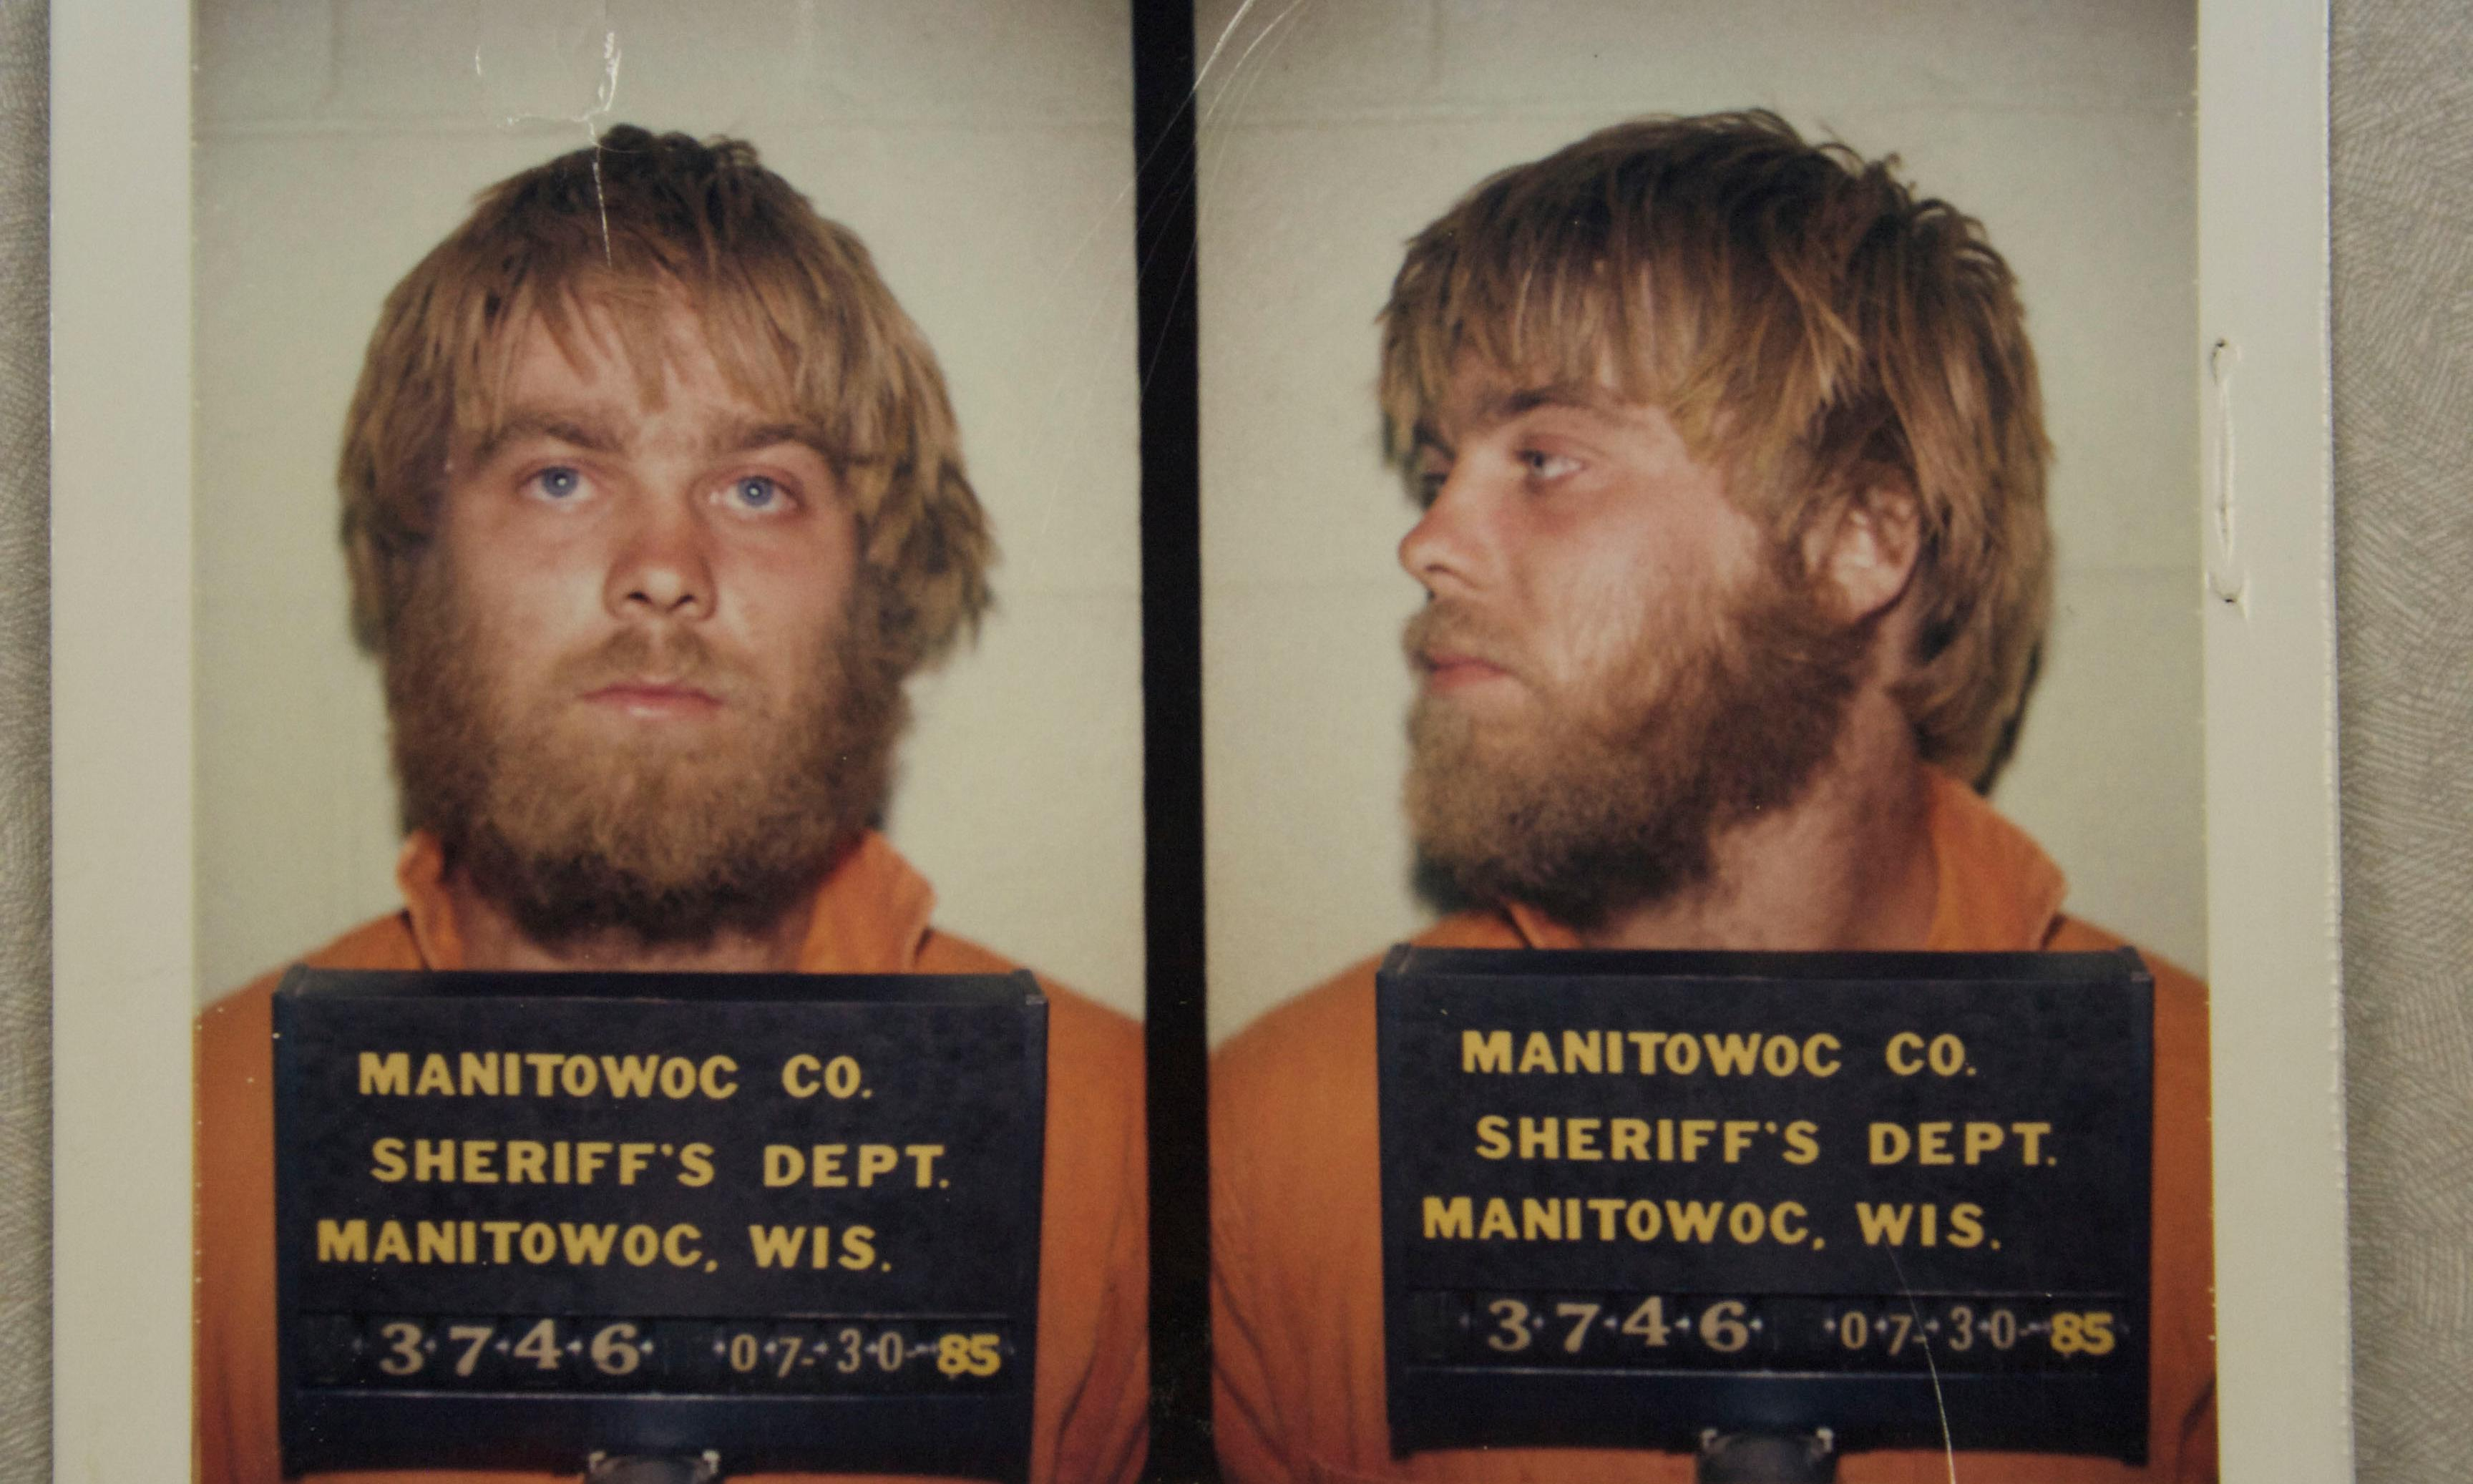 Wisconsin judge denies new trial for 'Making a Murderer' convict